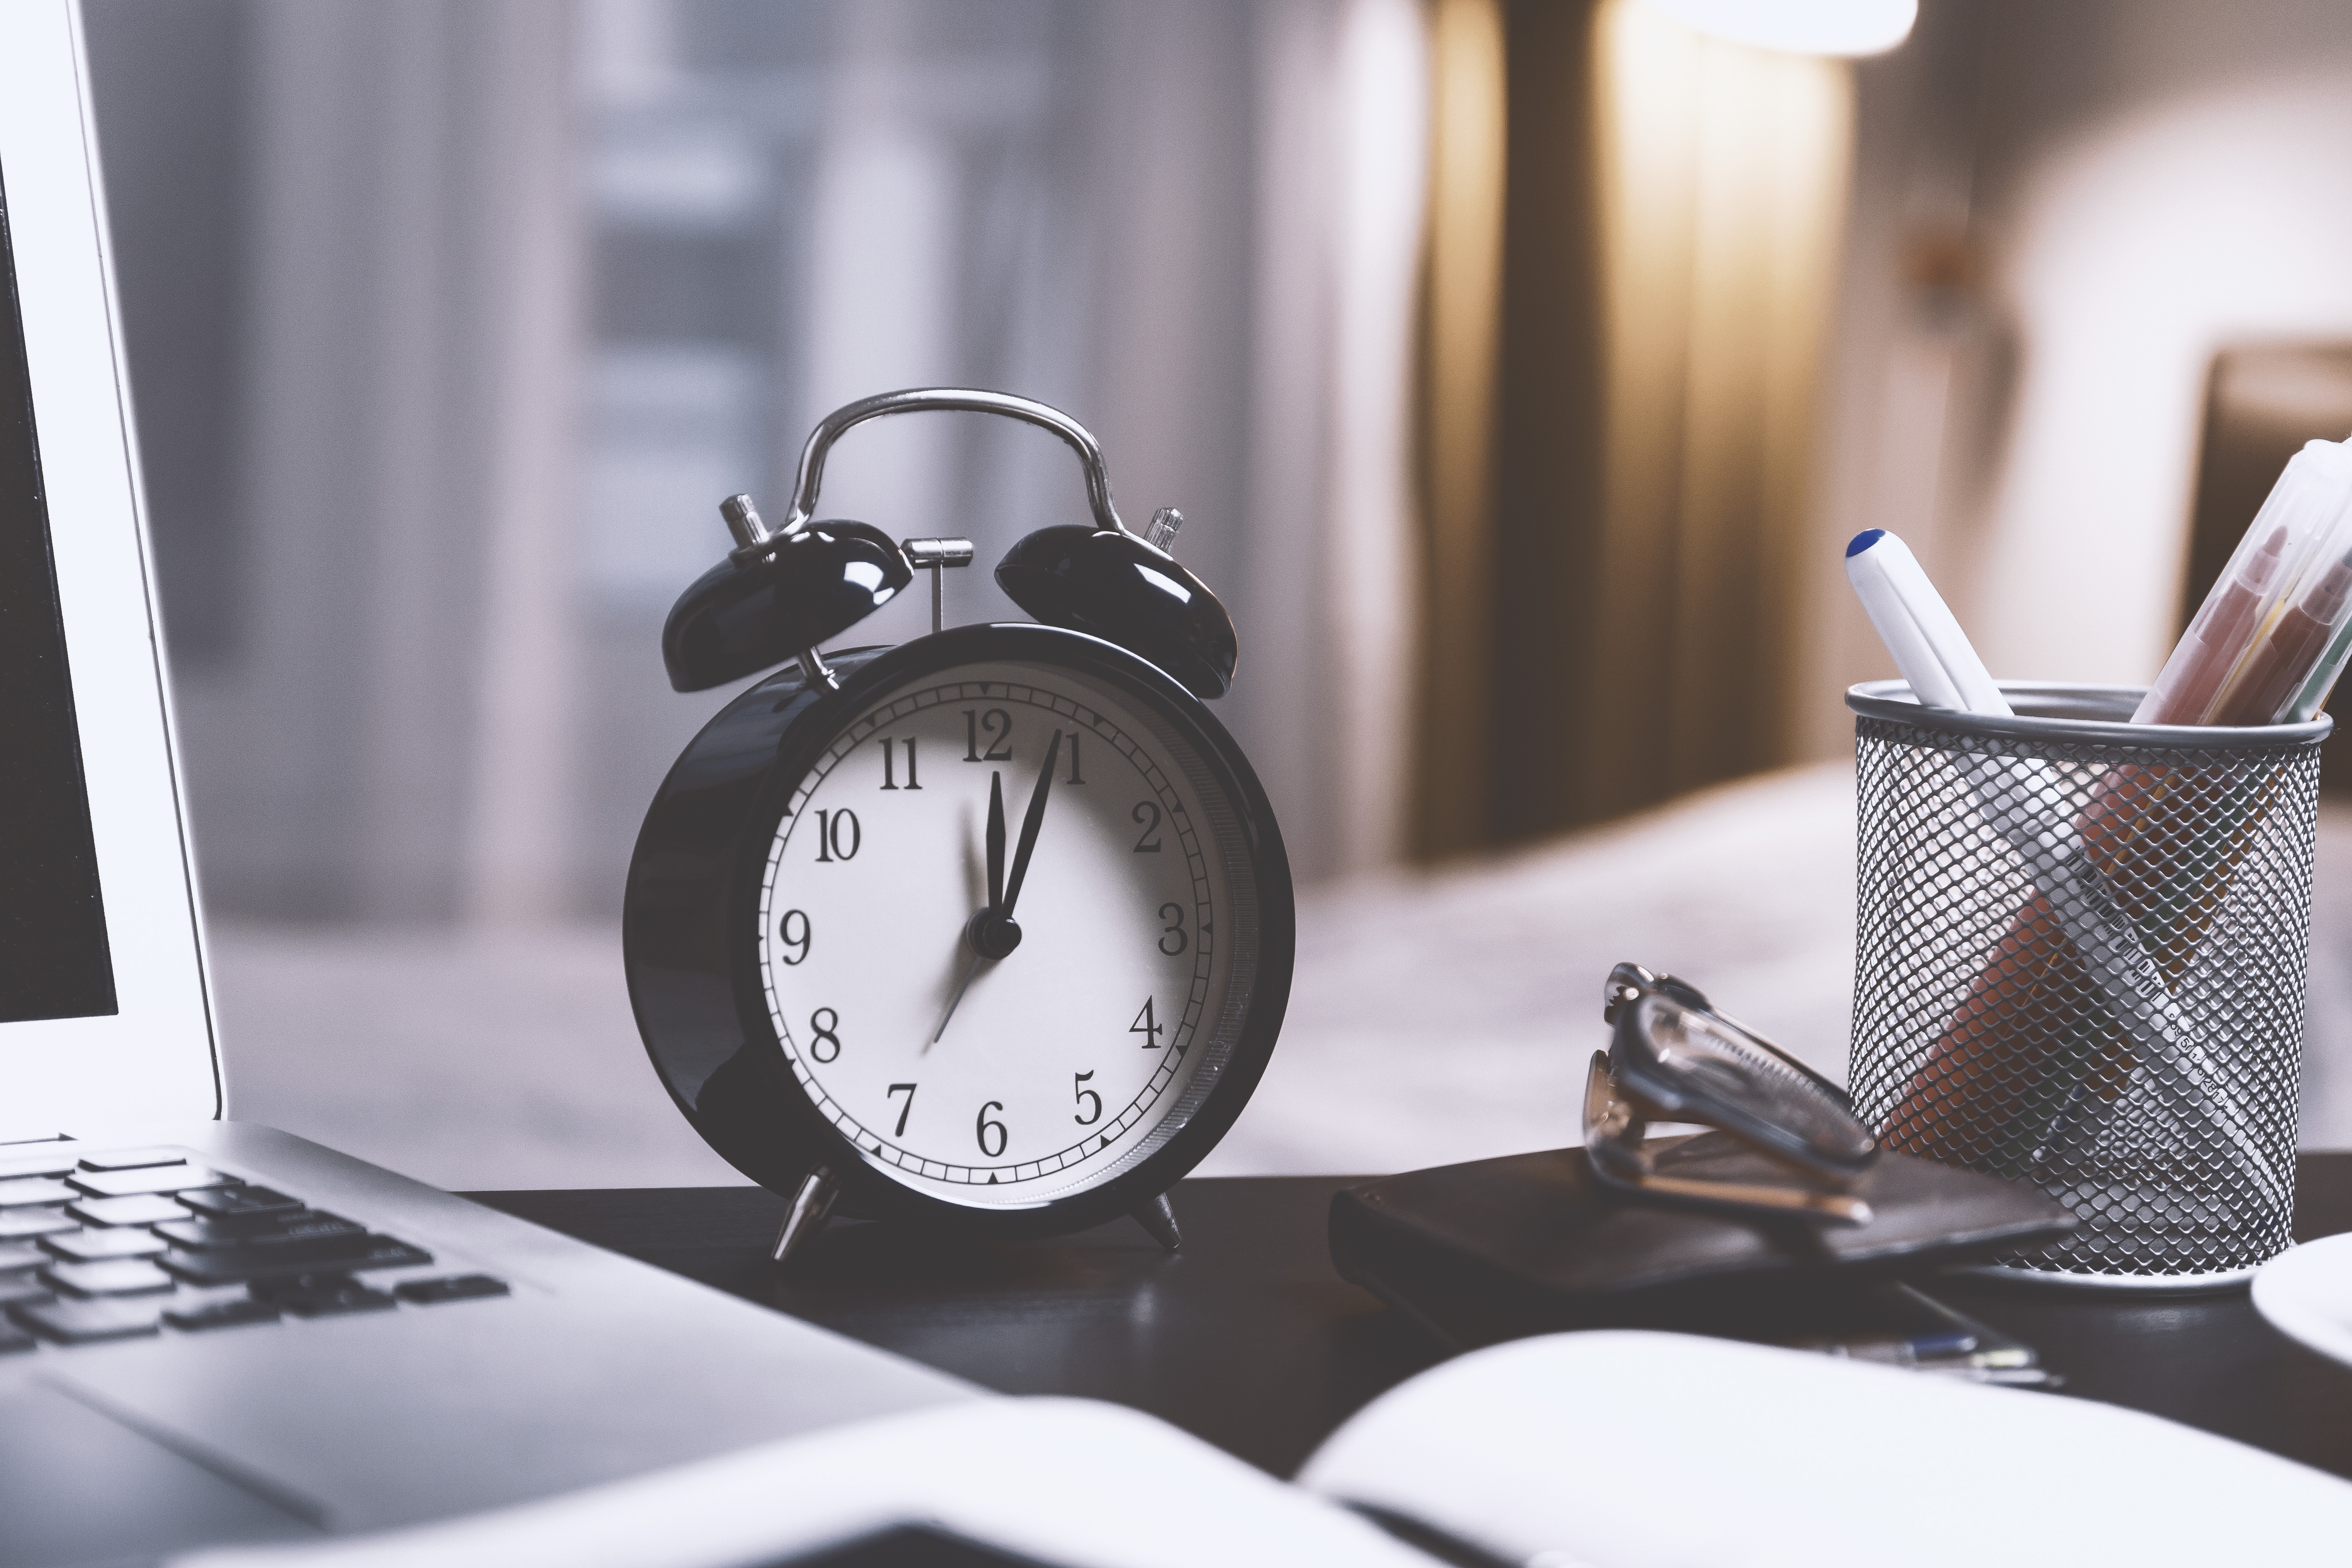 The Final Countdown: Last Minute Preparation for GDPR